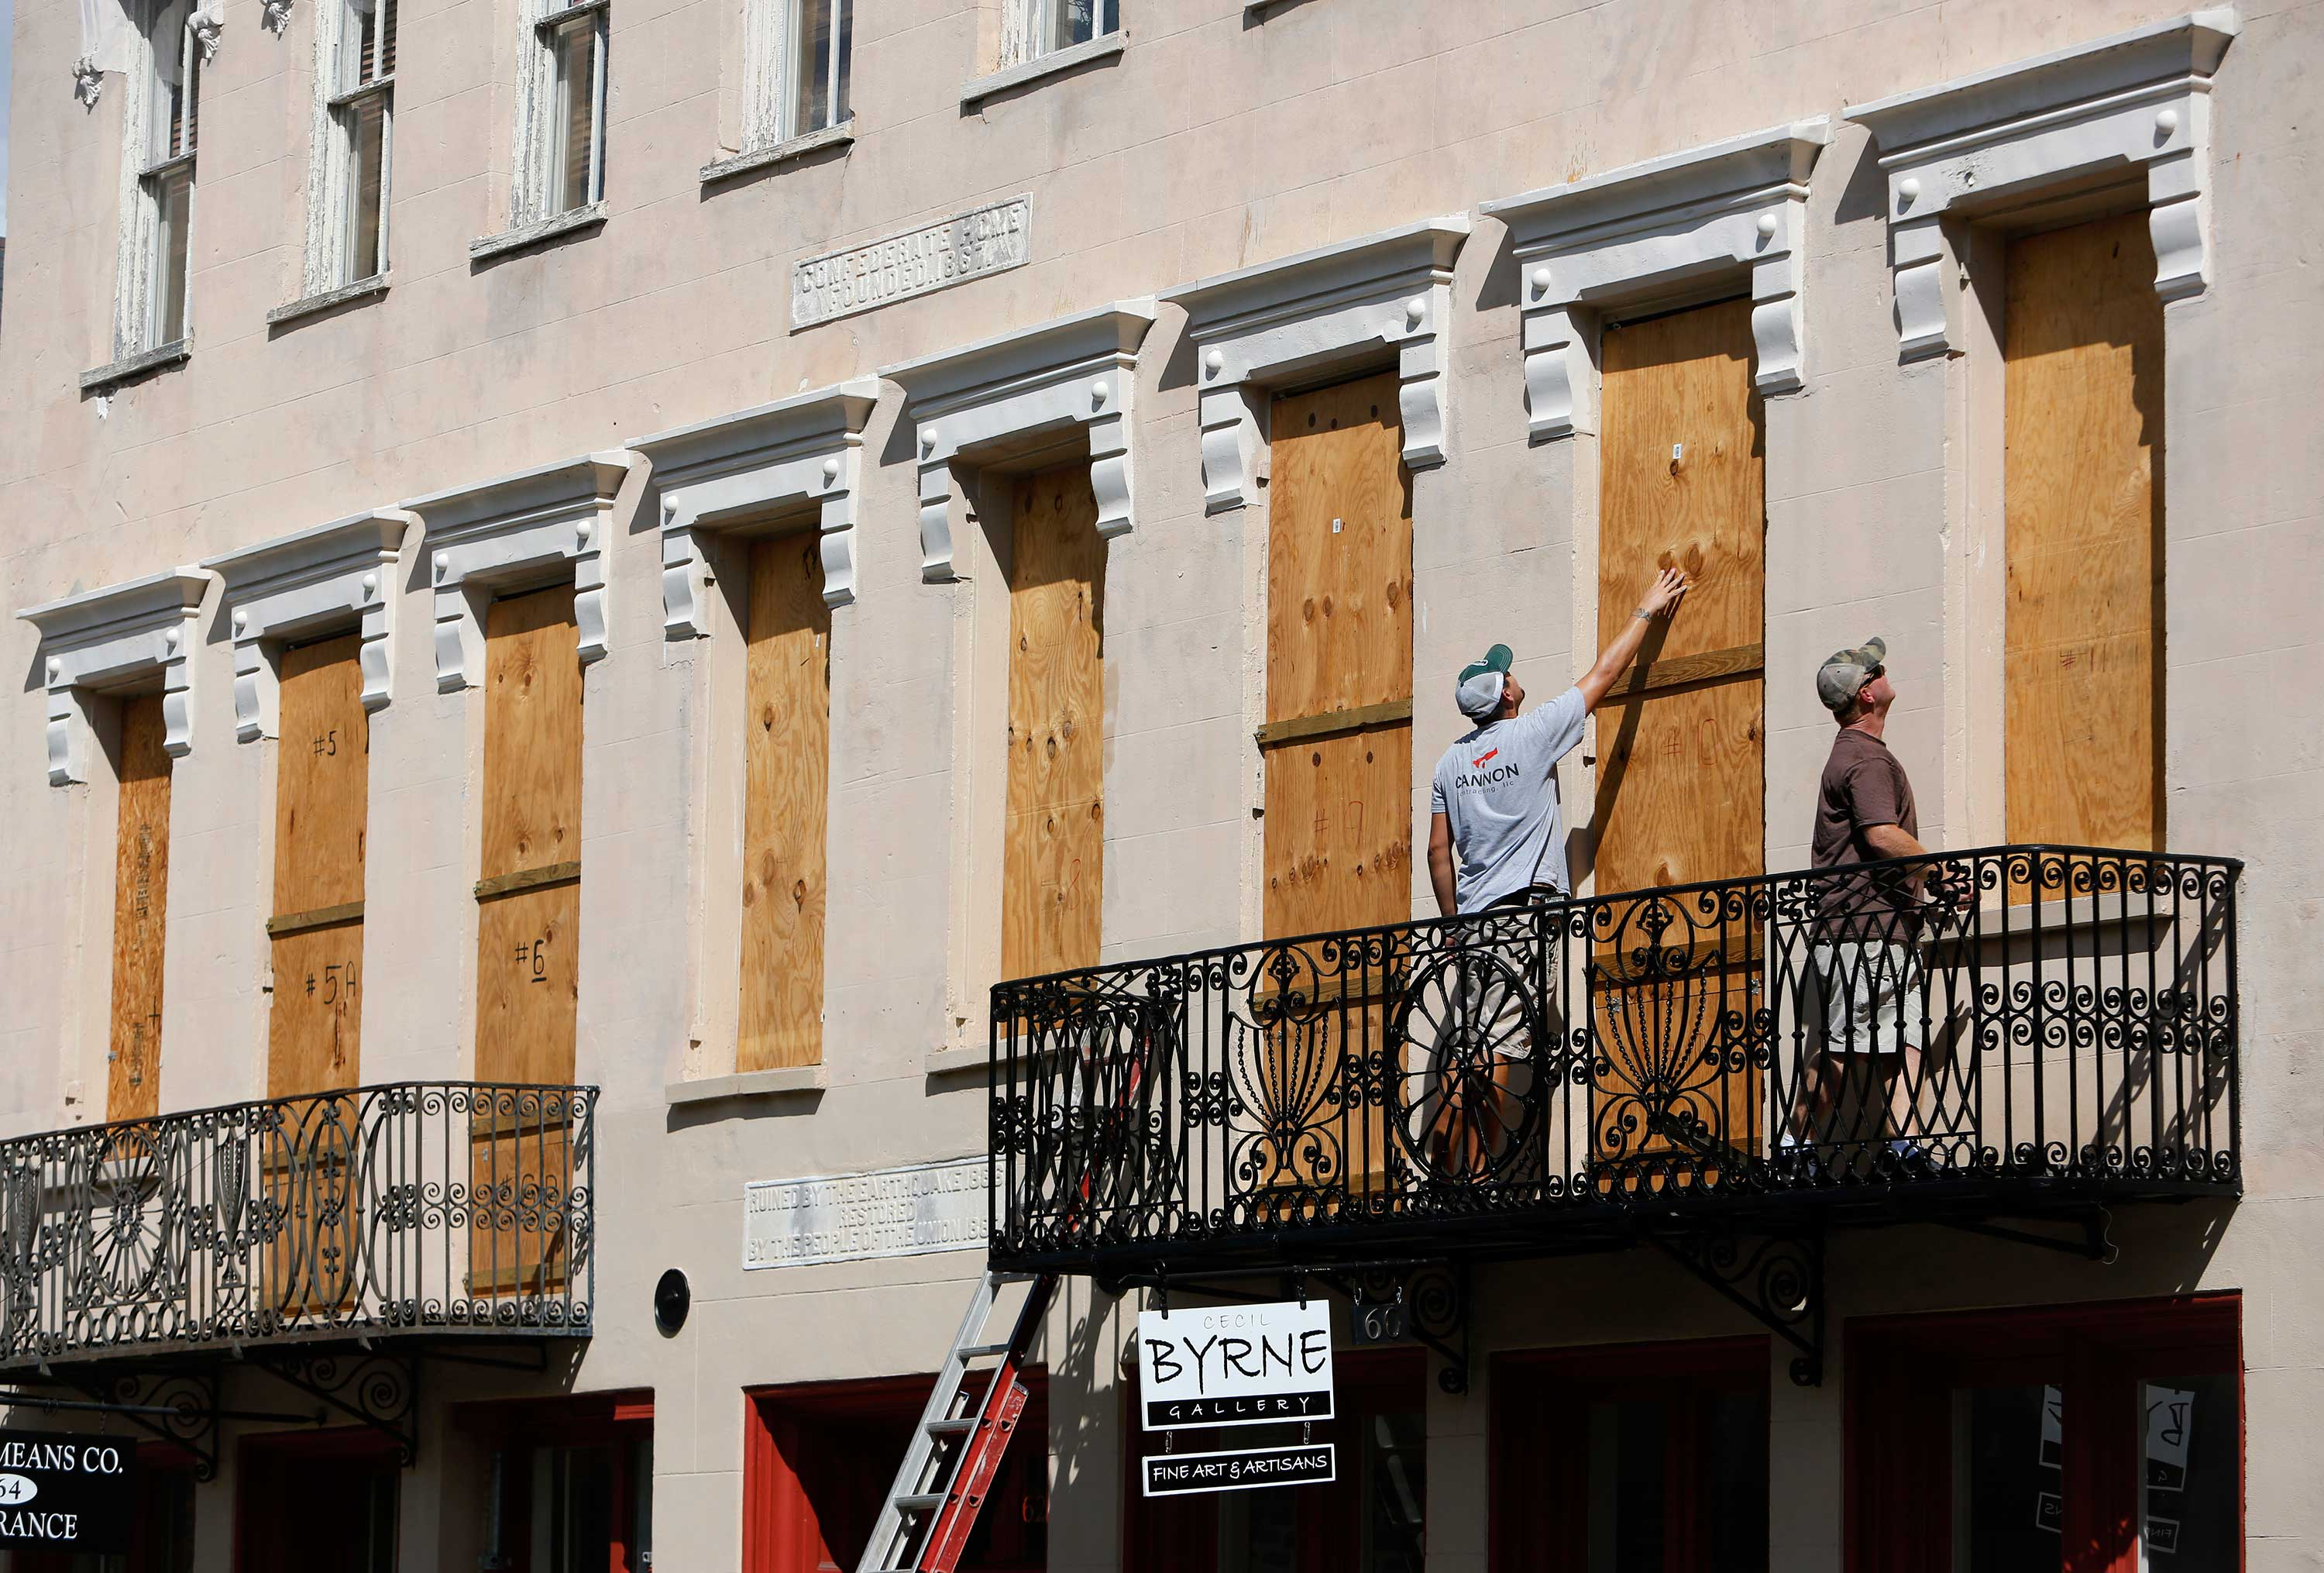 "<div class=""meta image-caption""><div class=""origin-logo origin-image none""><span>none</span></div><span class=""caption-text"">Derek Mundy, left, and Kris Crouse boards up the Confederate House in preparation for Hurricane Florence in downtown Charleston, S.C., Tuesday, Sept. 11, 2018. (Mic Smith/AP Photo)</span></div>"